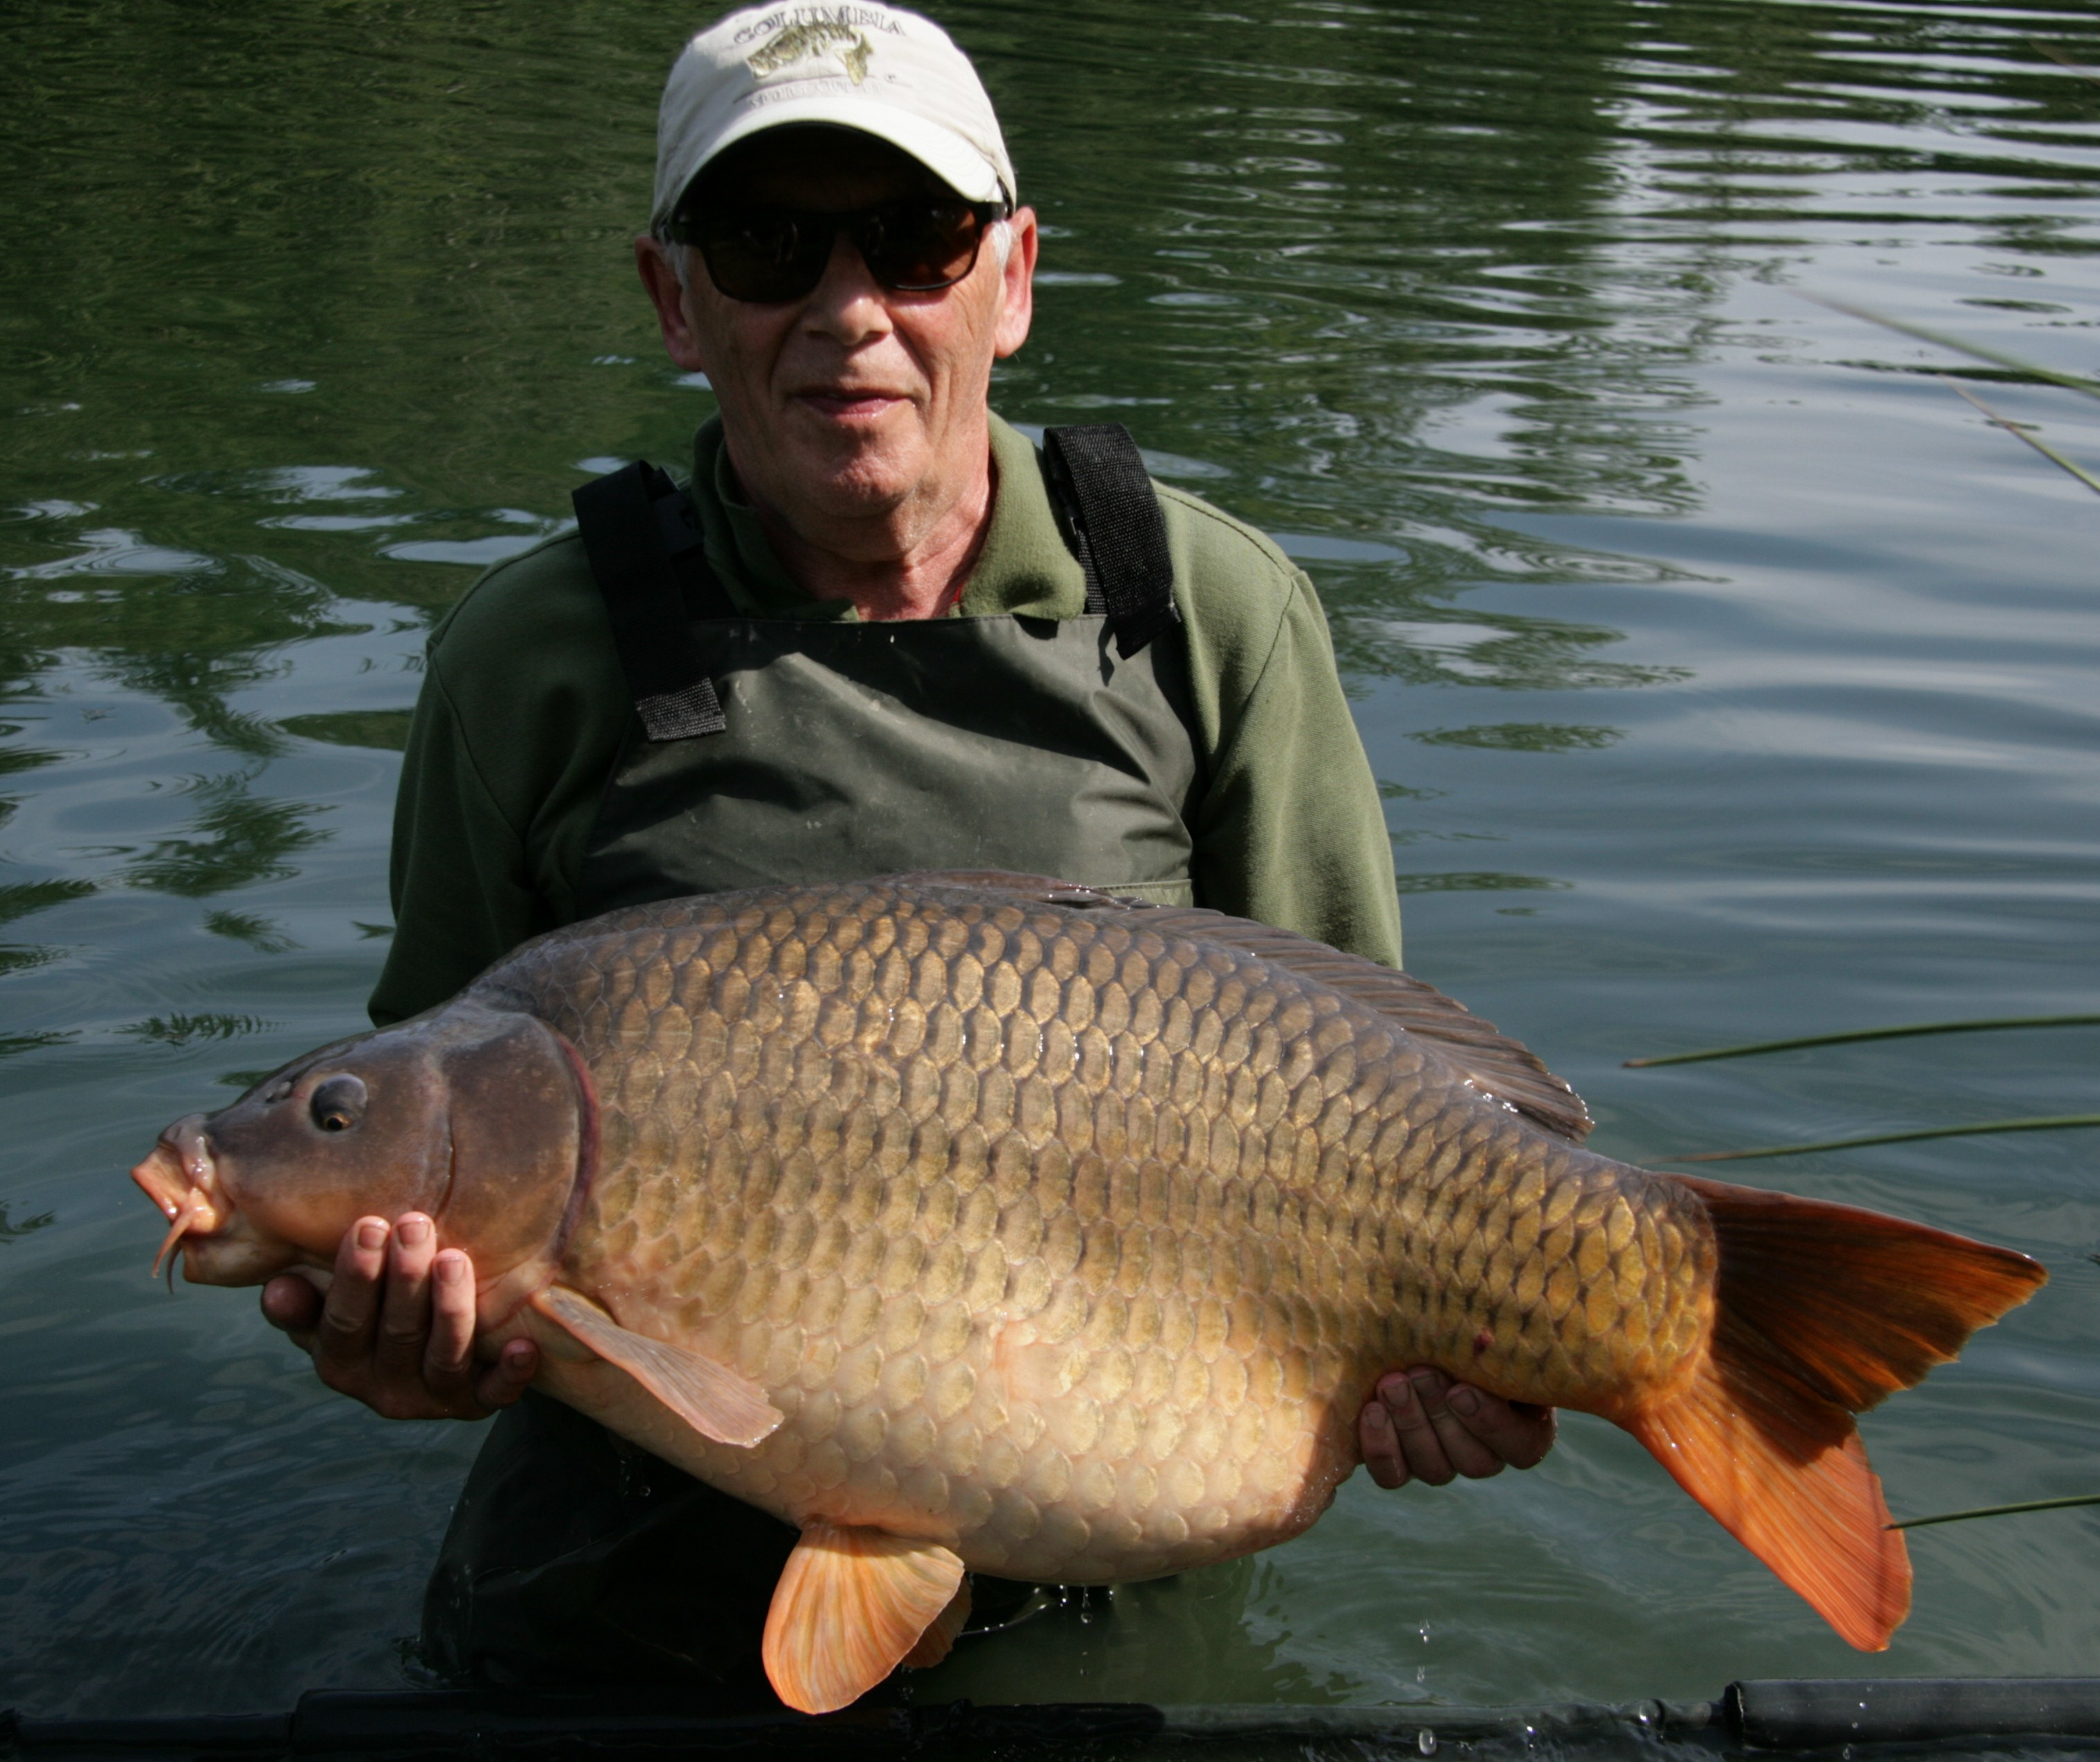 https://www.puyravaudcarp.com/wp-content/uploads/2016/10/36.12-2.jpg